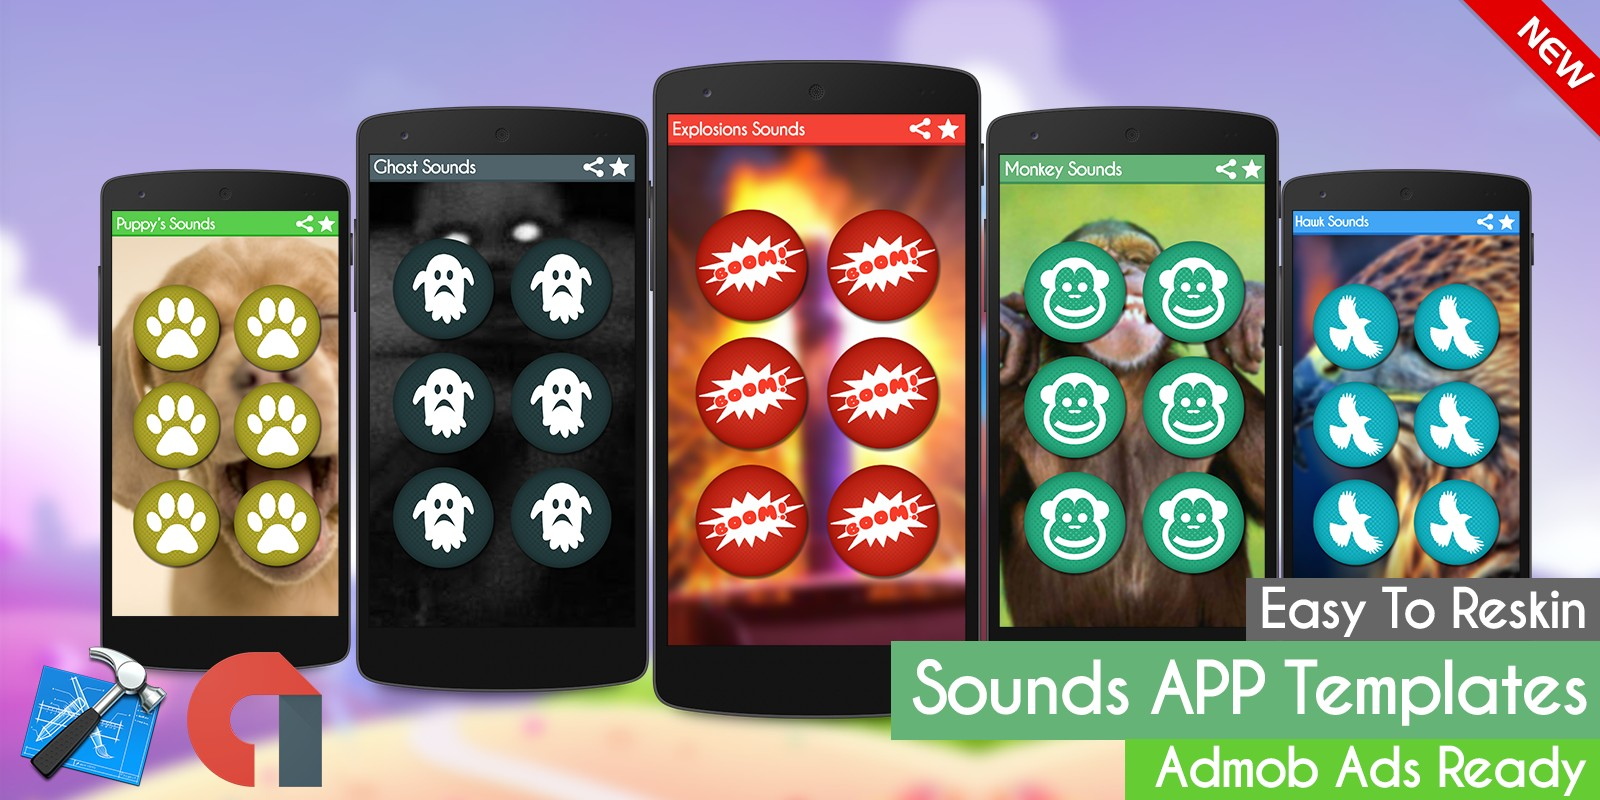 Explosions Sounds - iOS Xcode App Template - iOS App Templates ...